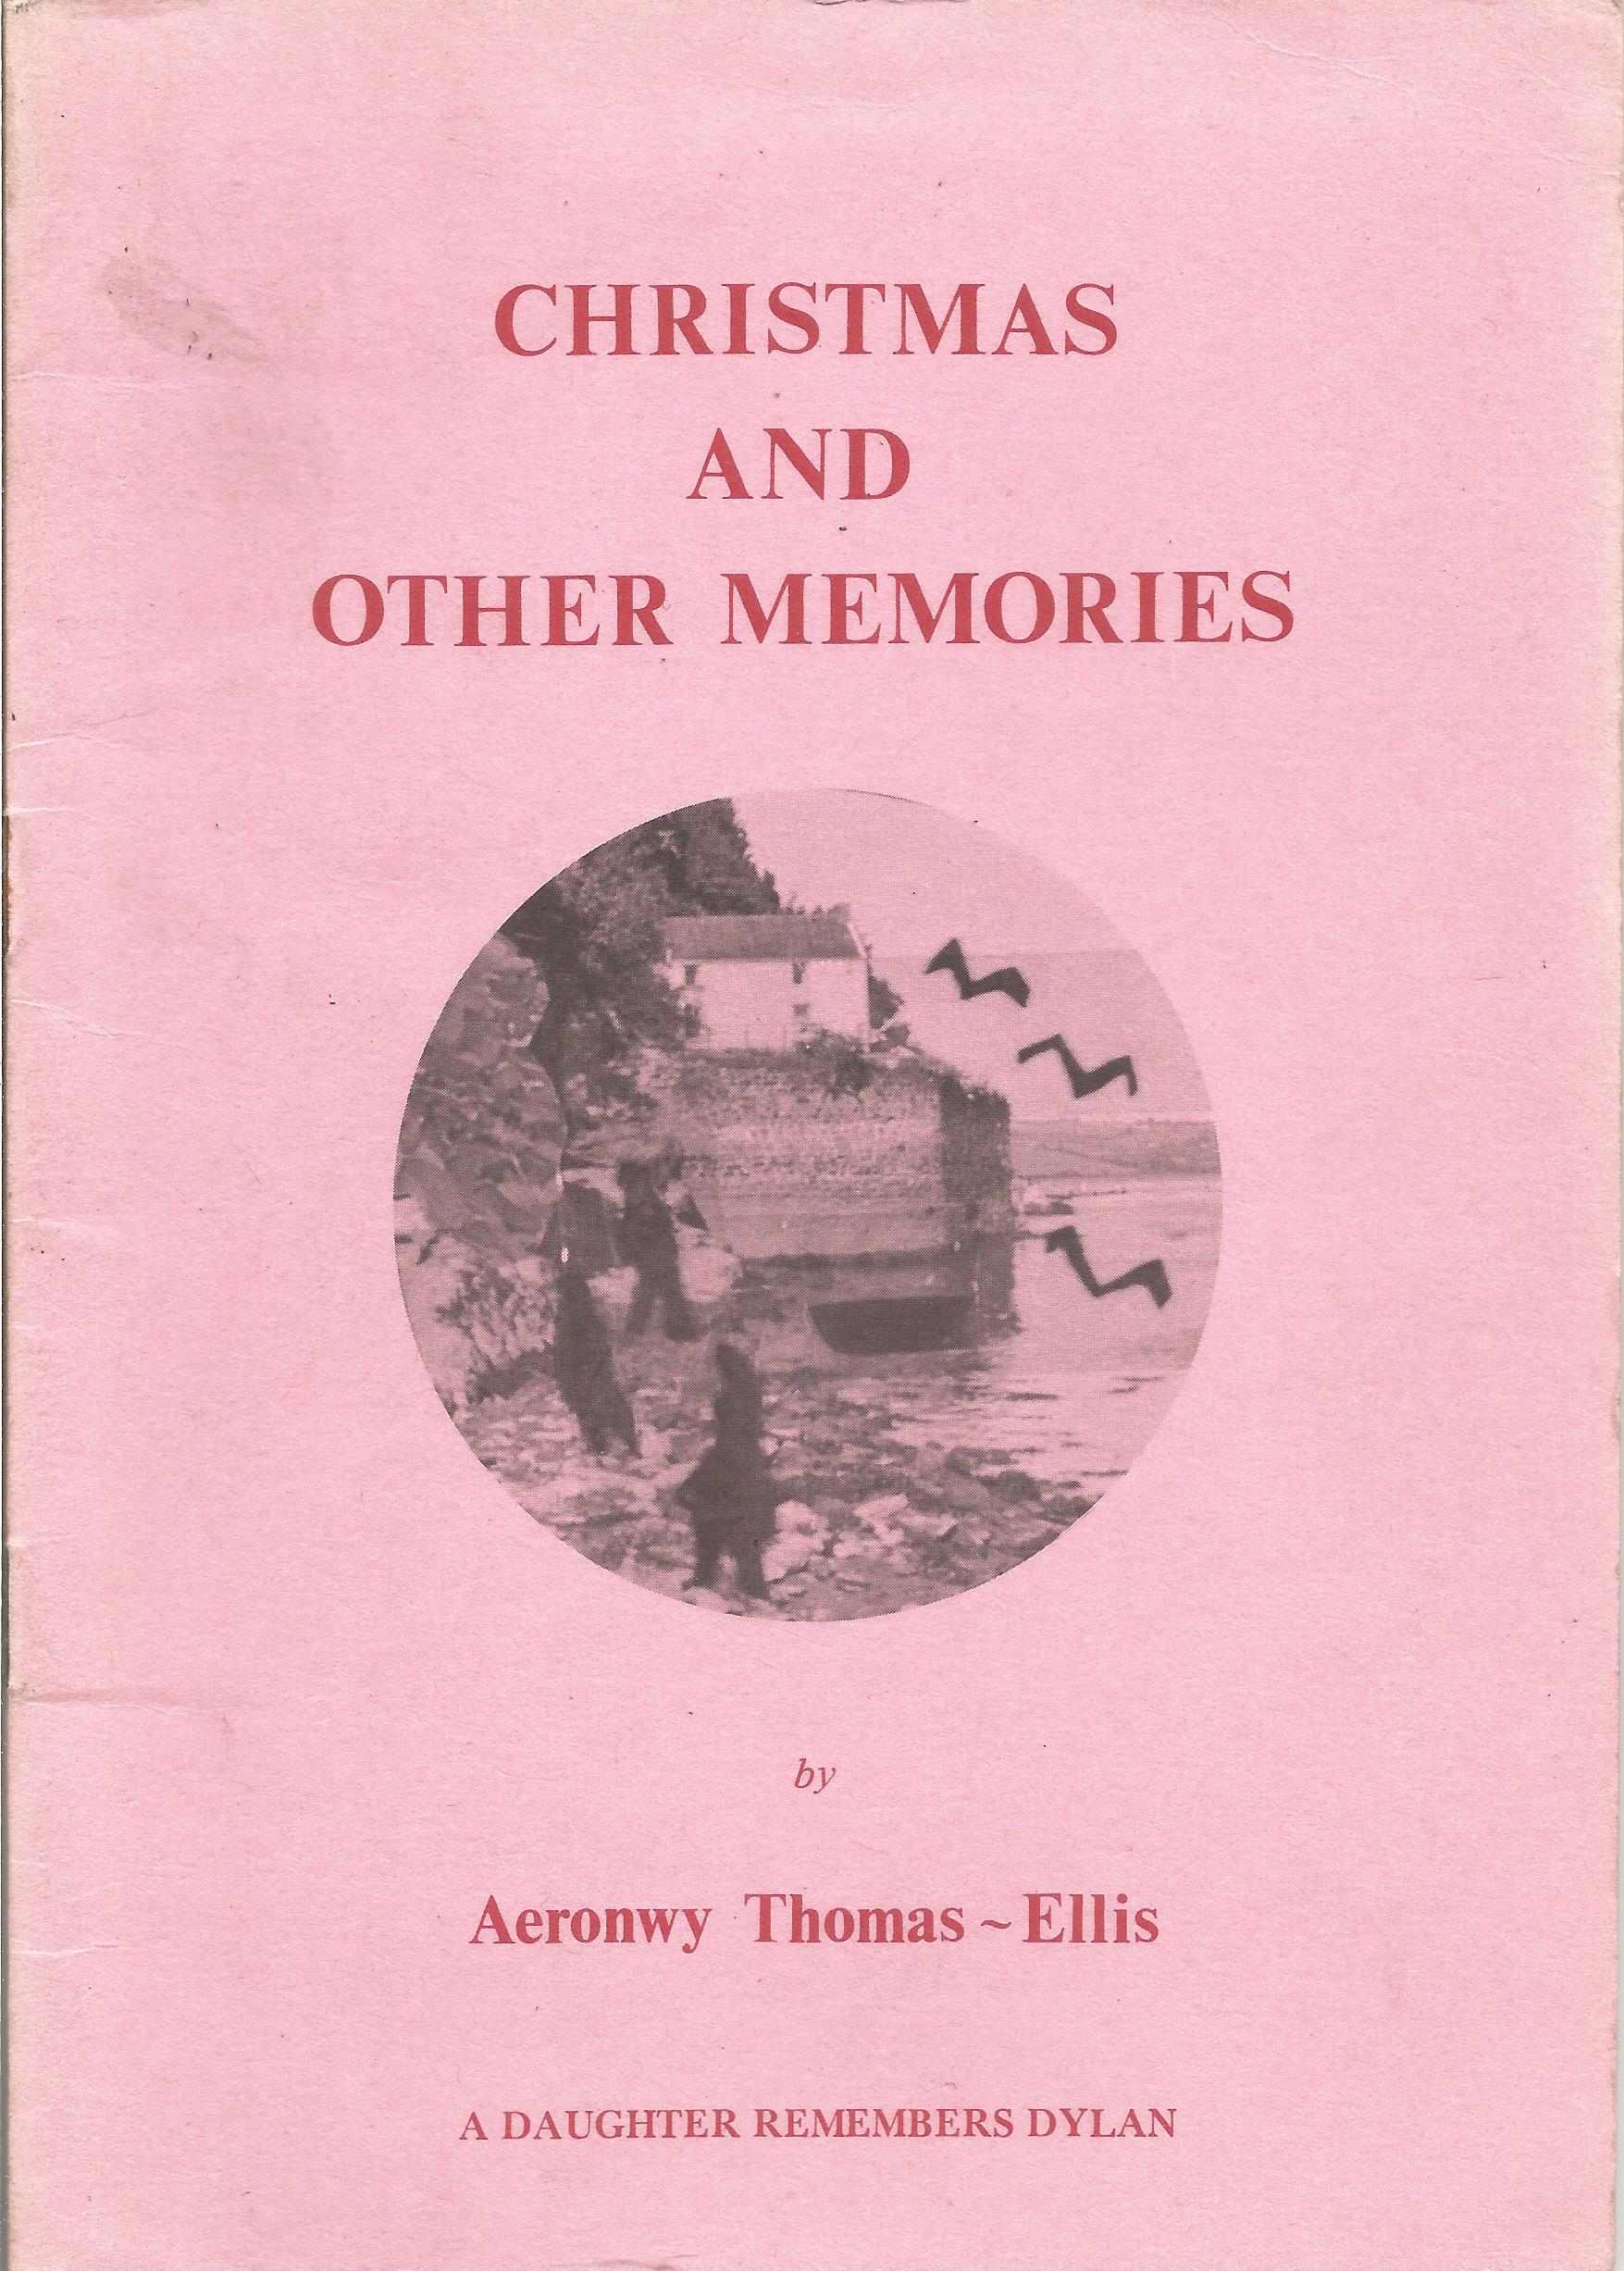 Aeronwy Thomas Ellis Paperback Book Christmas and other Memories signed by the Author on the Title